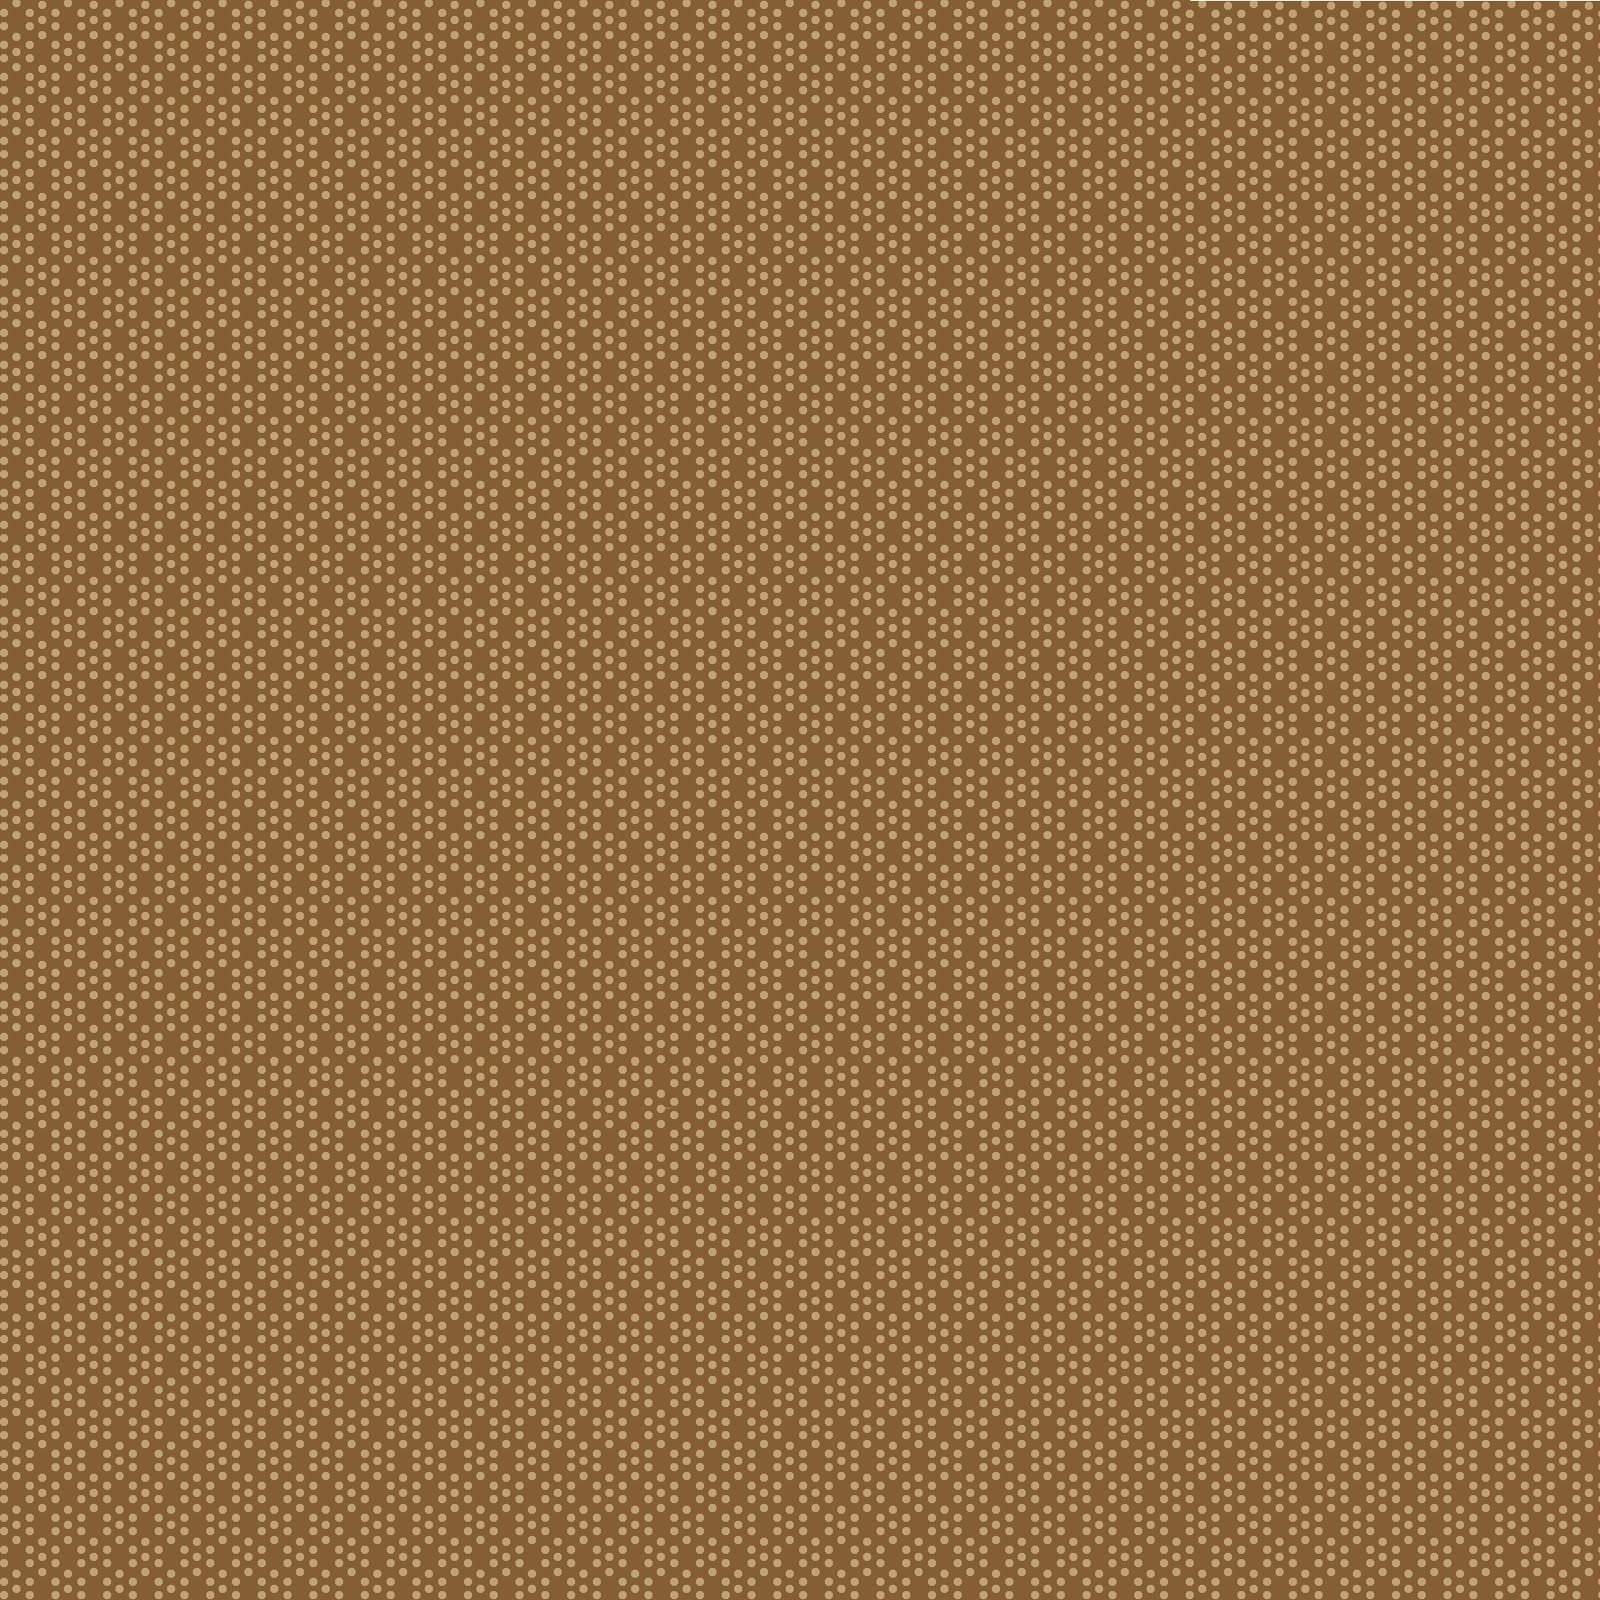 Dot Mini - Caramel<br/>Henry Glass 2110-43